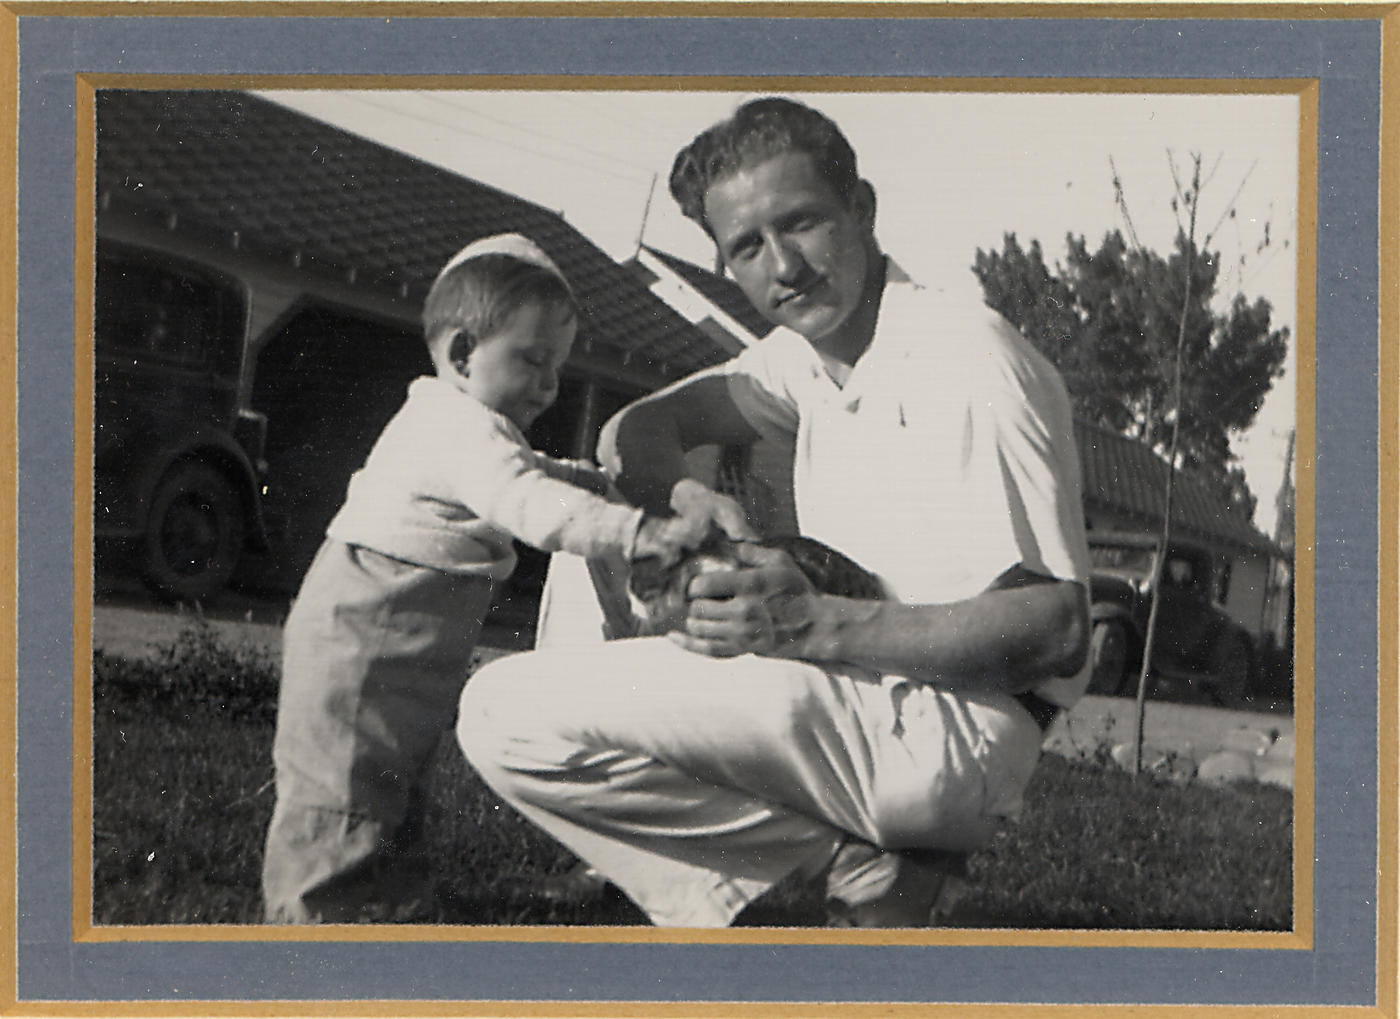 Jan Hall and his dad in 1936